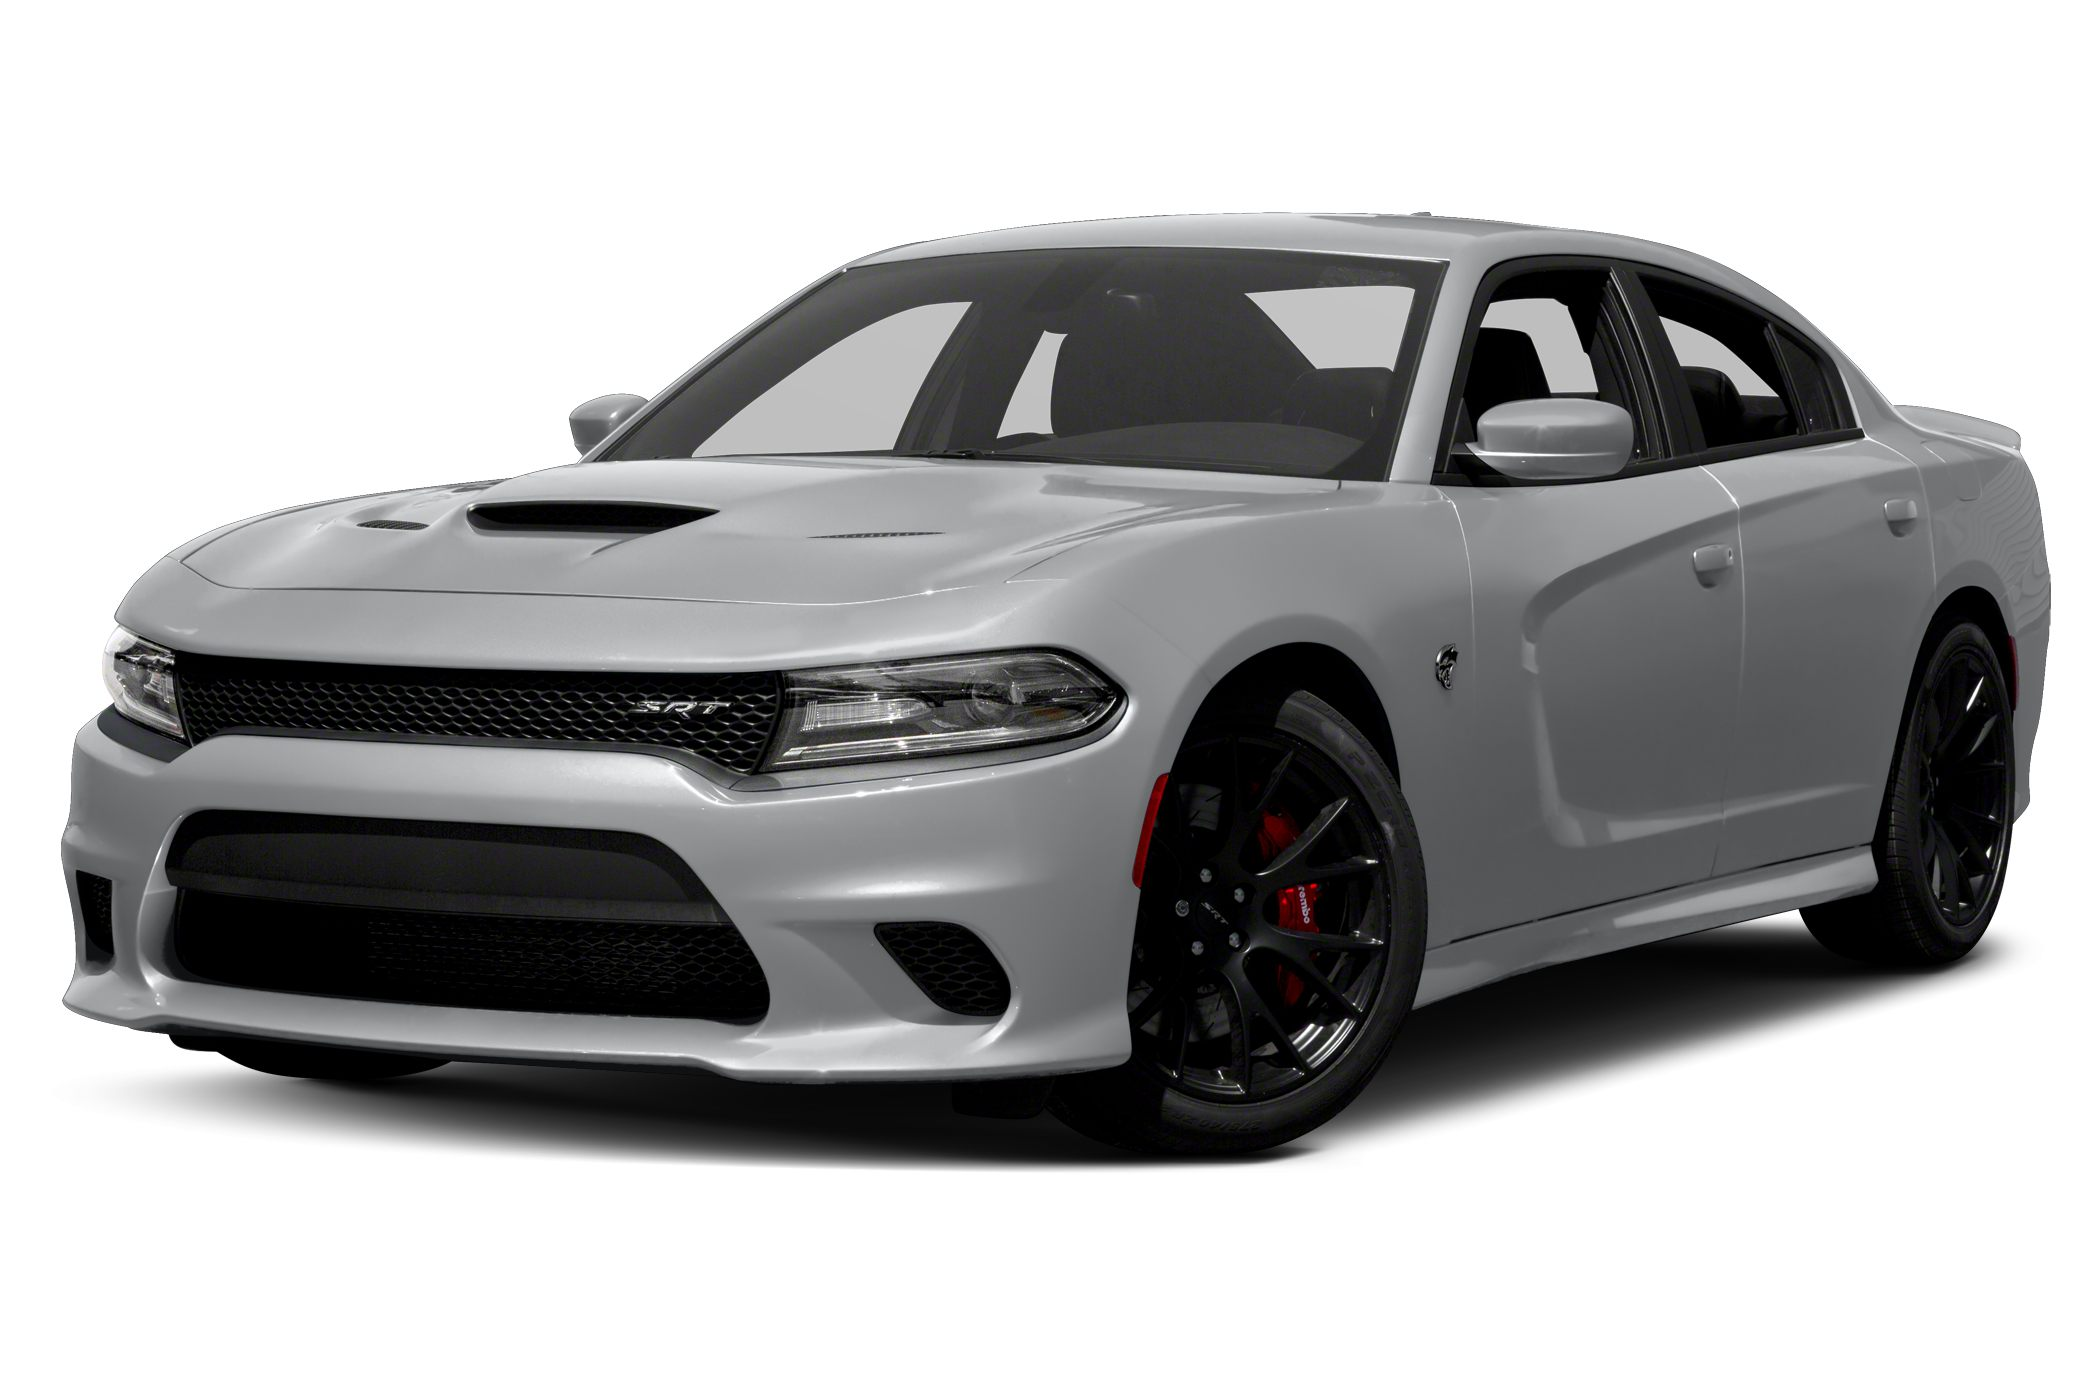 2018 Hellcat Charger >> 2018 Dodge Charger Srt Hellcat 4dr Rear Wheel Drive Sedan Pictures